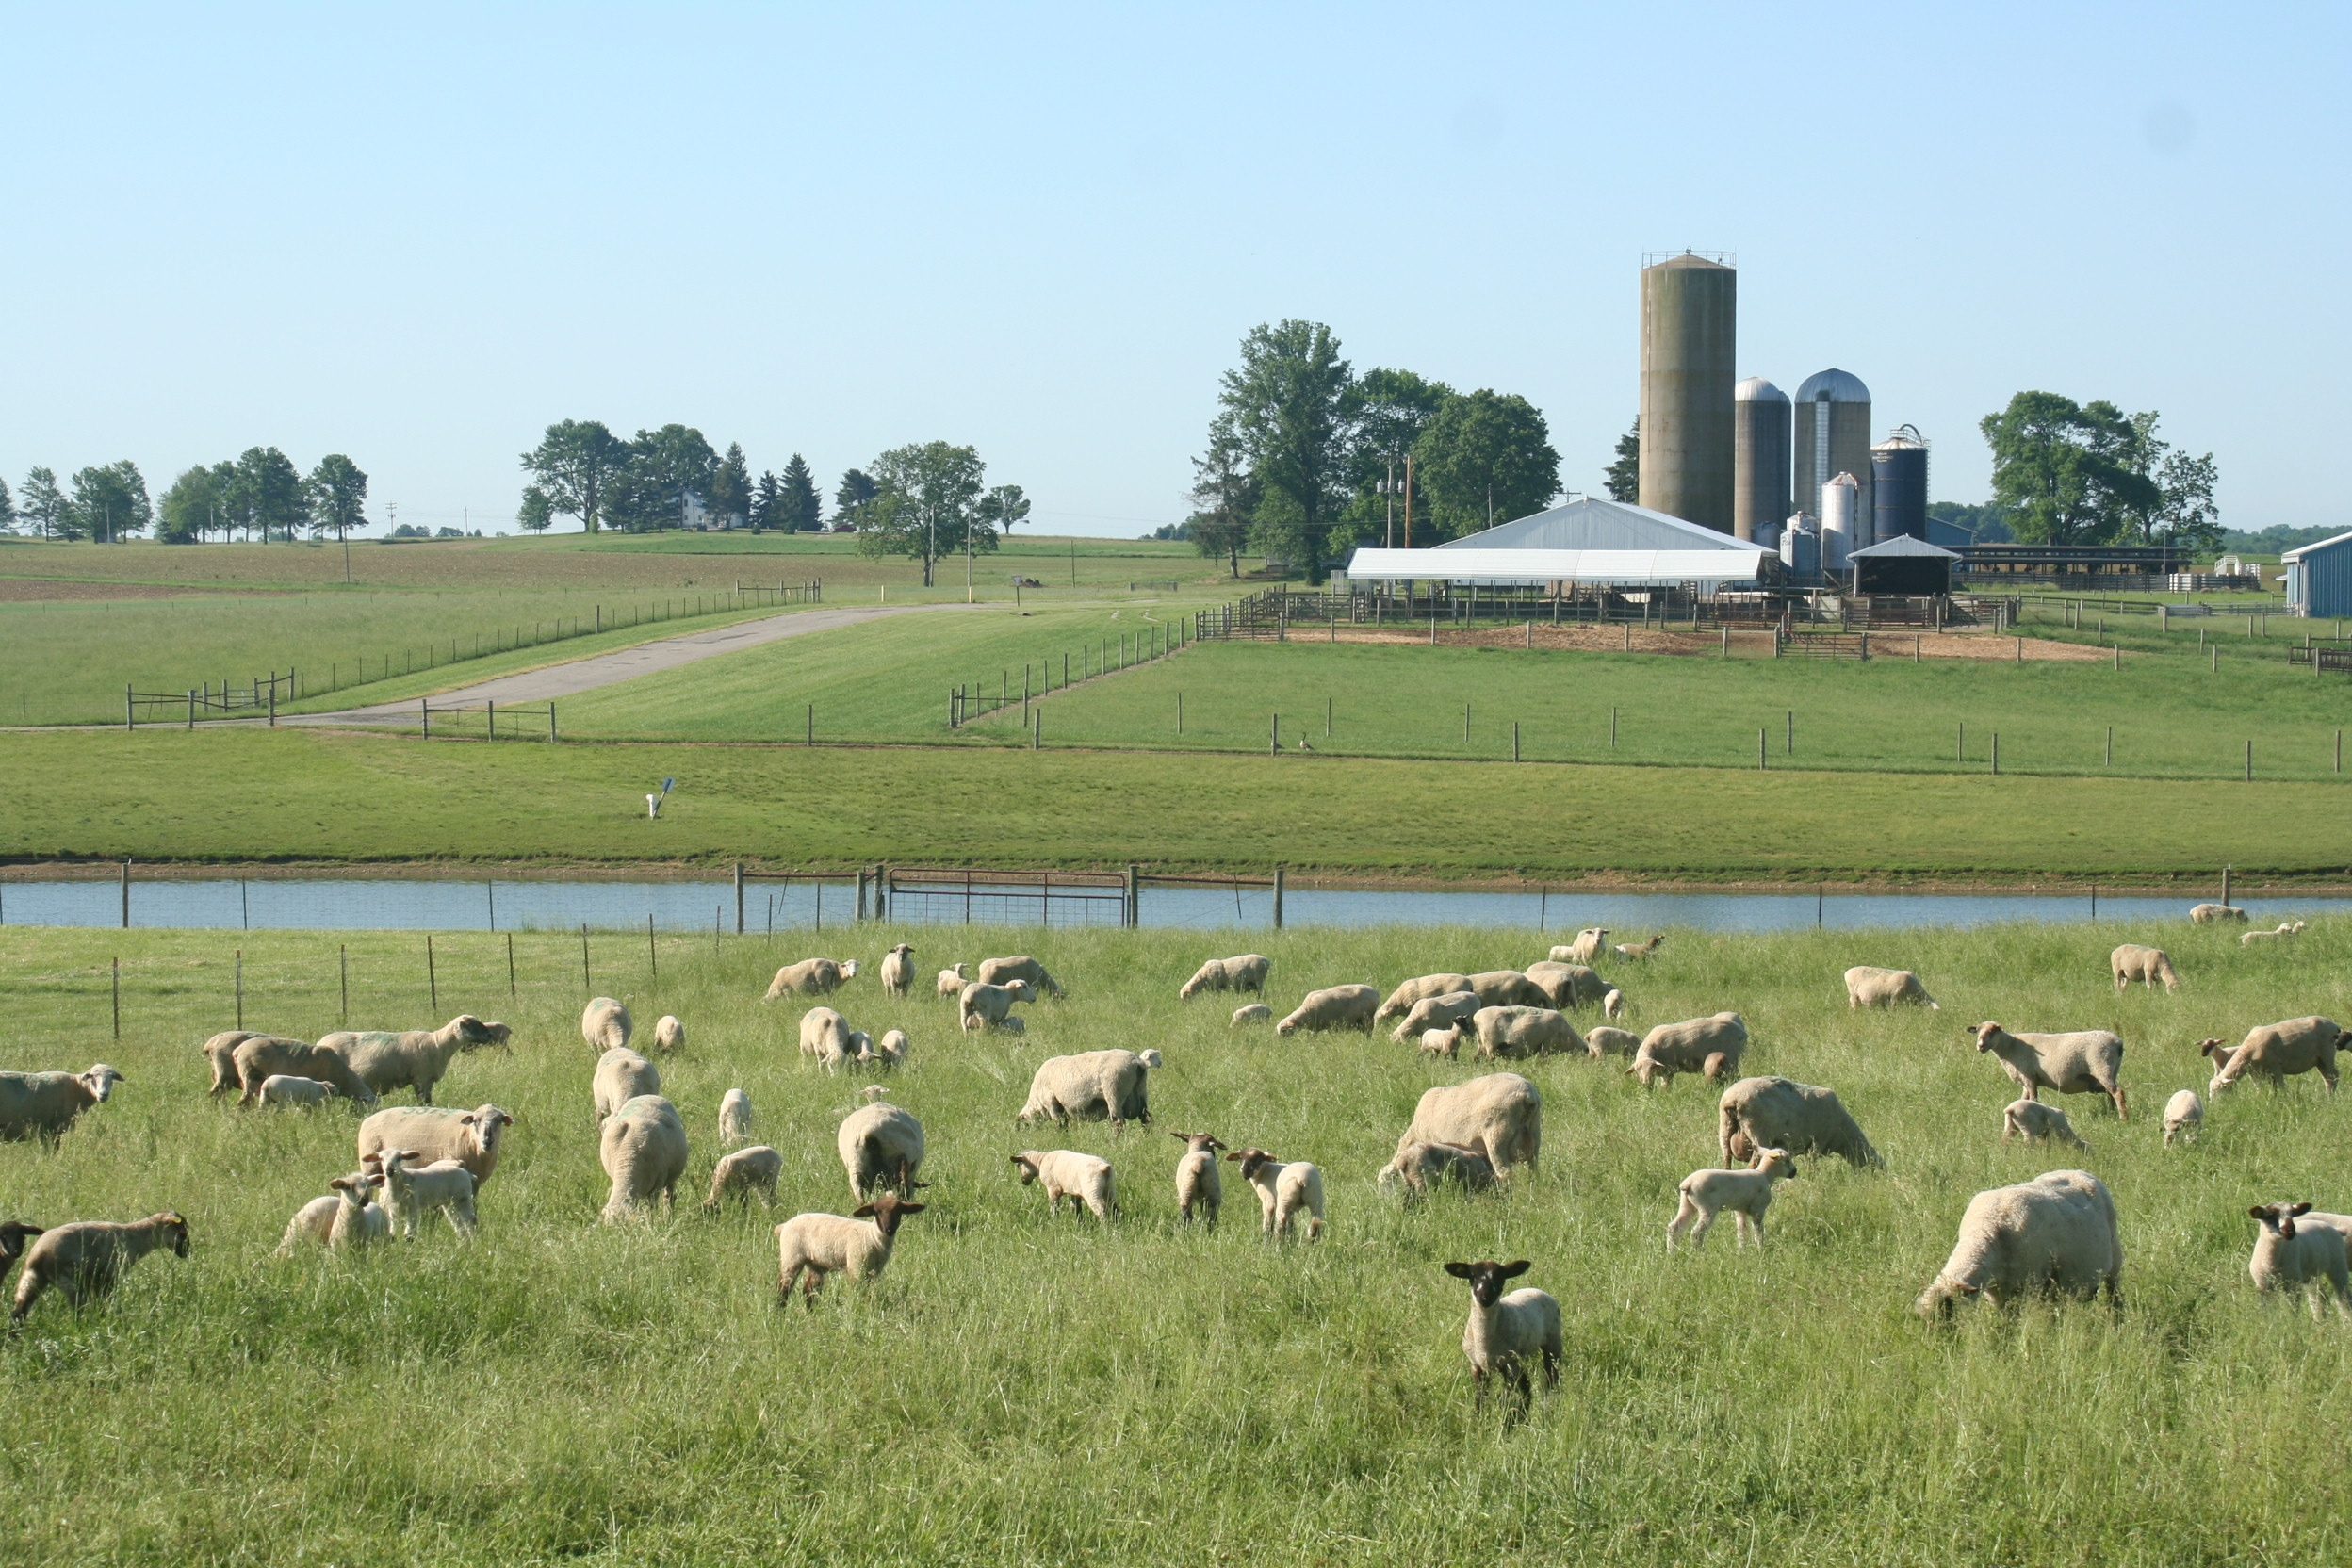 Sheep grazing improved pasture